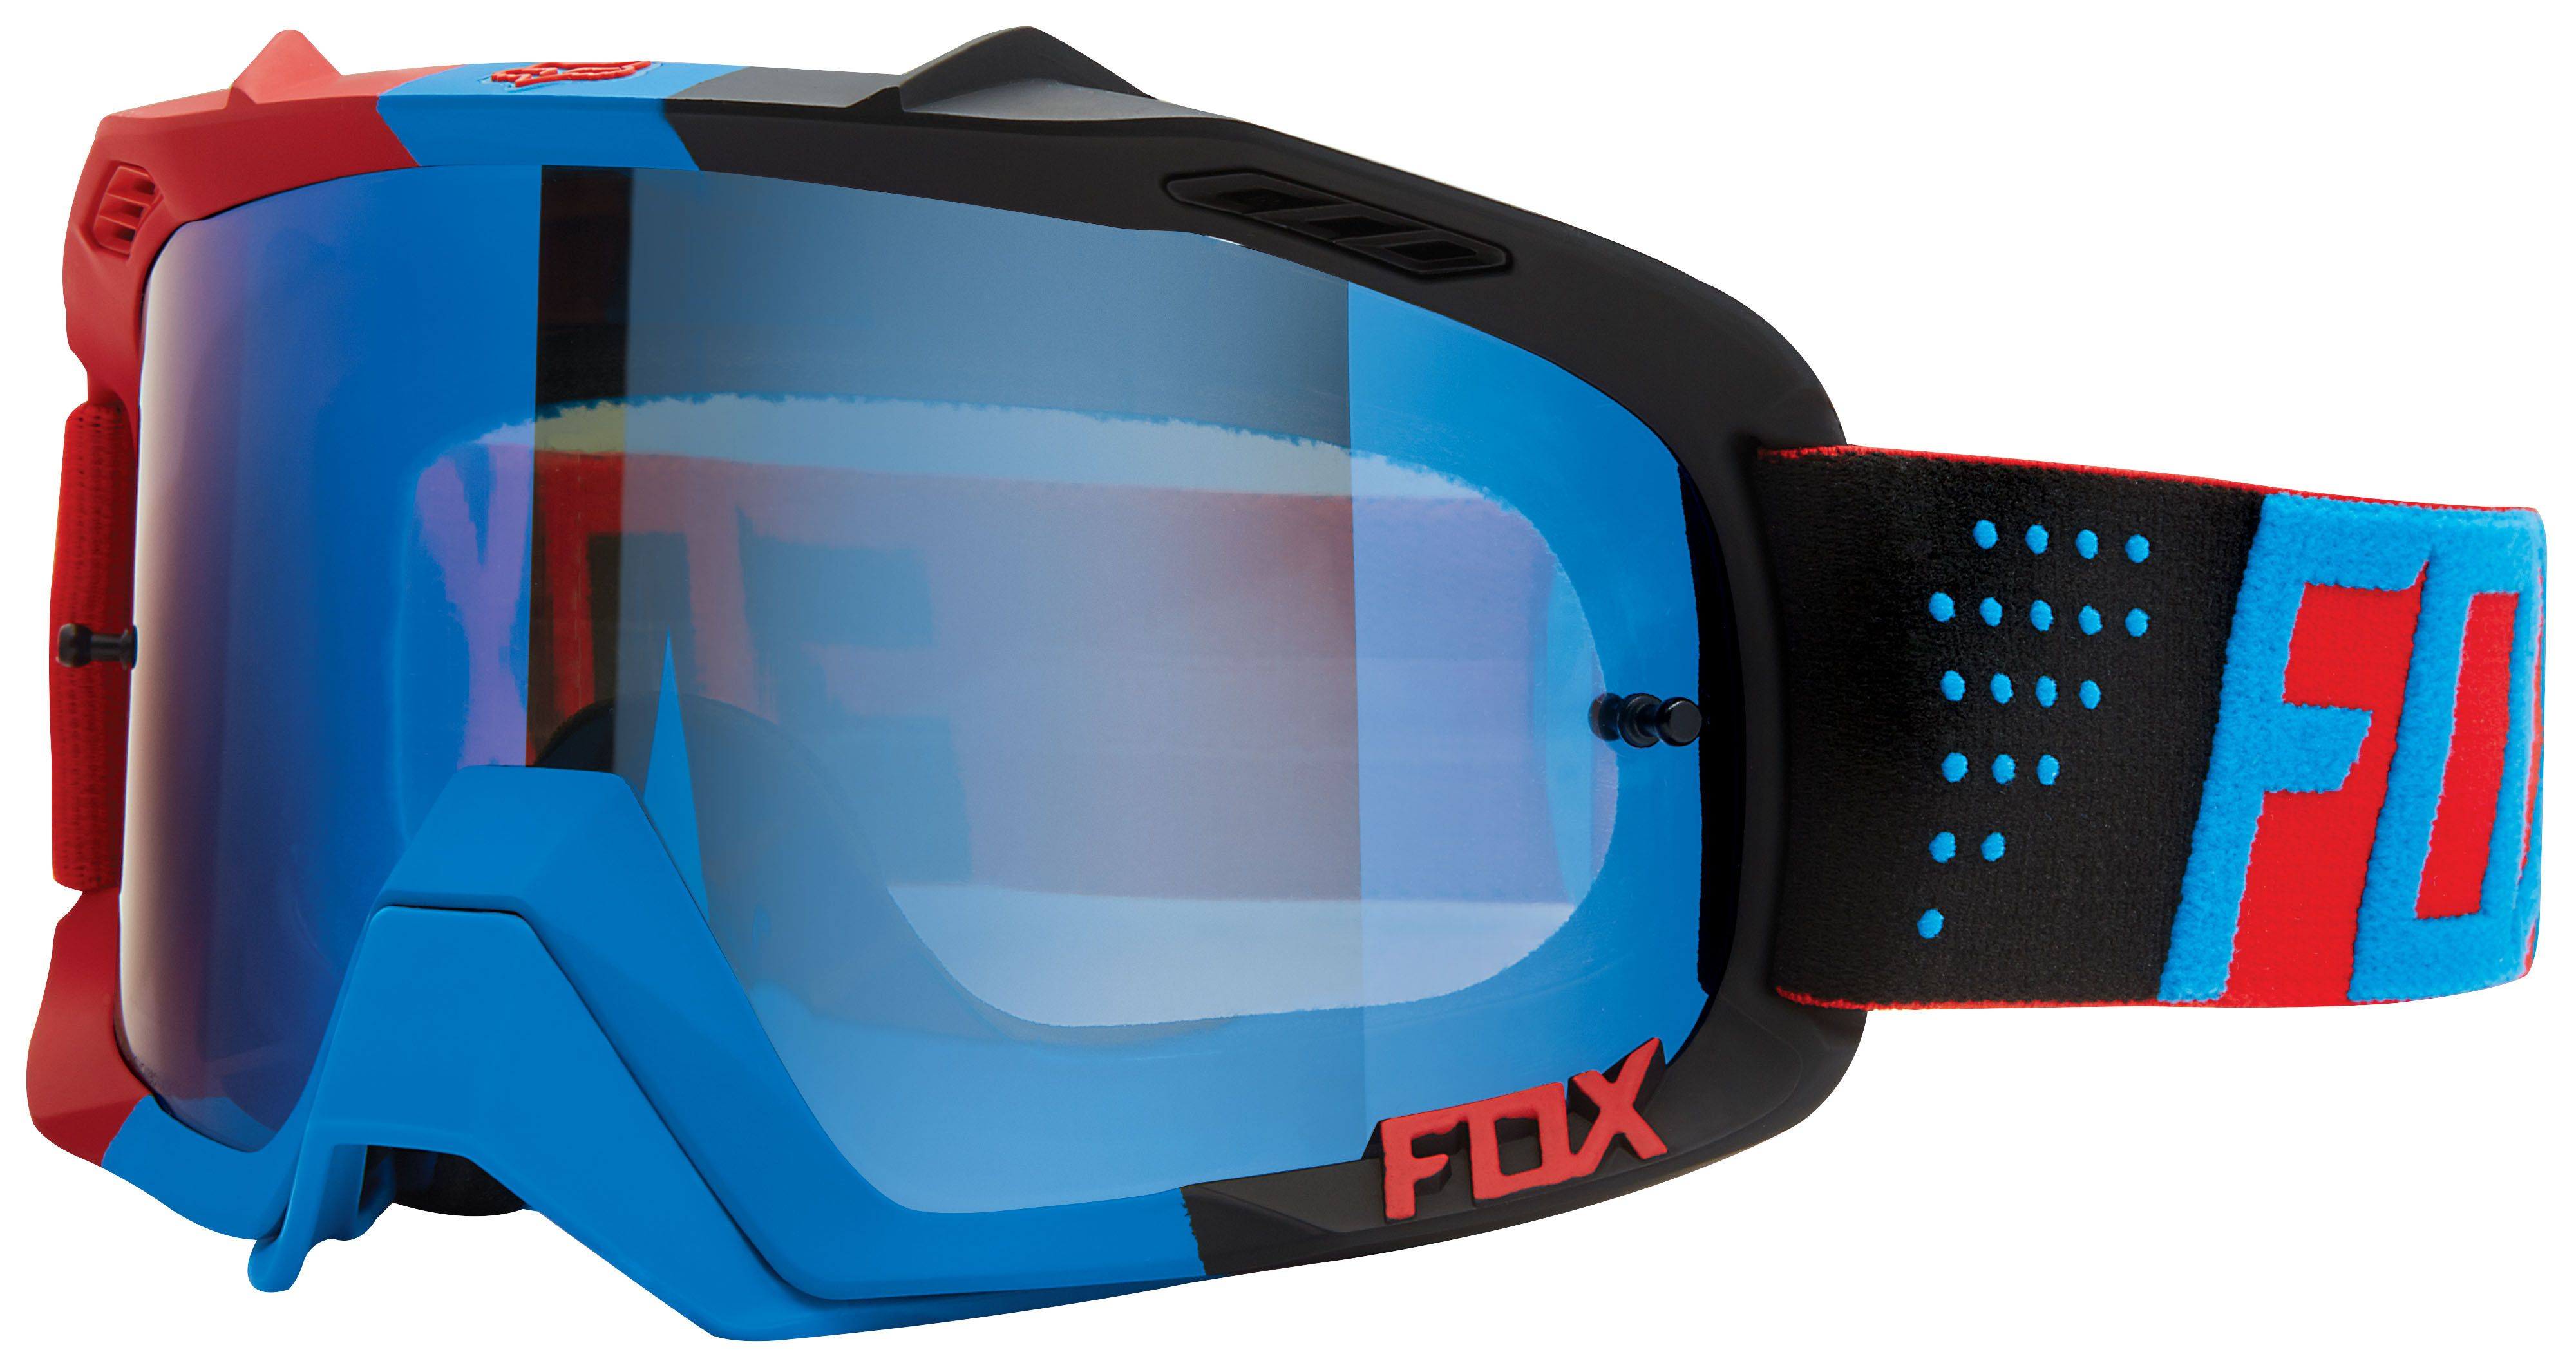 Red Libra Fox Racing Air Defence Libra Goggles 30 31 48 Off